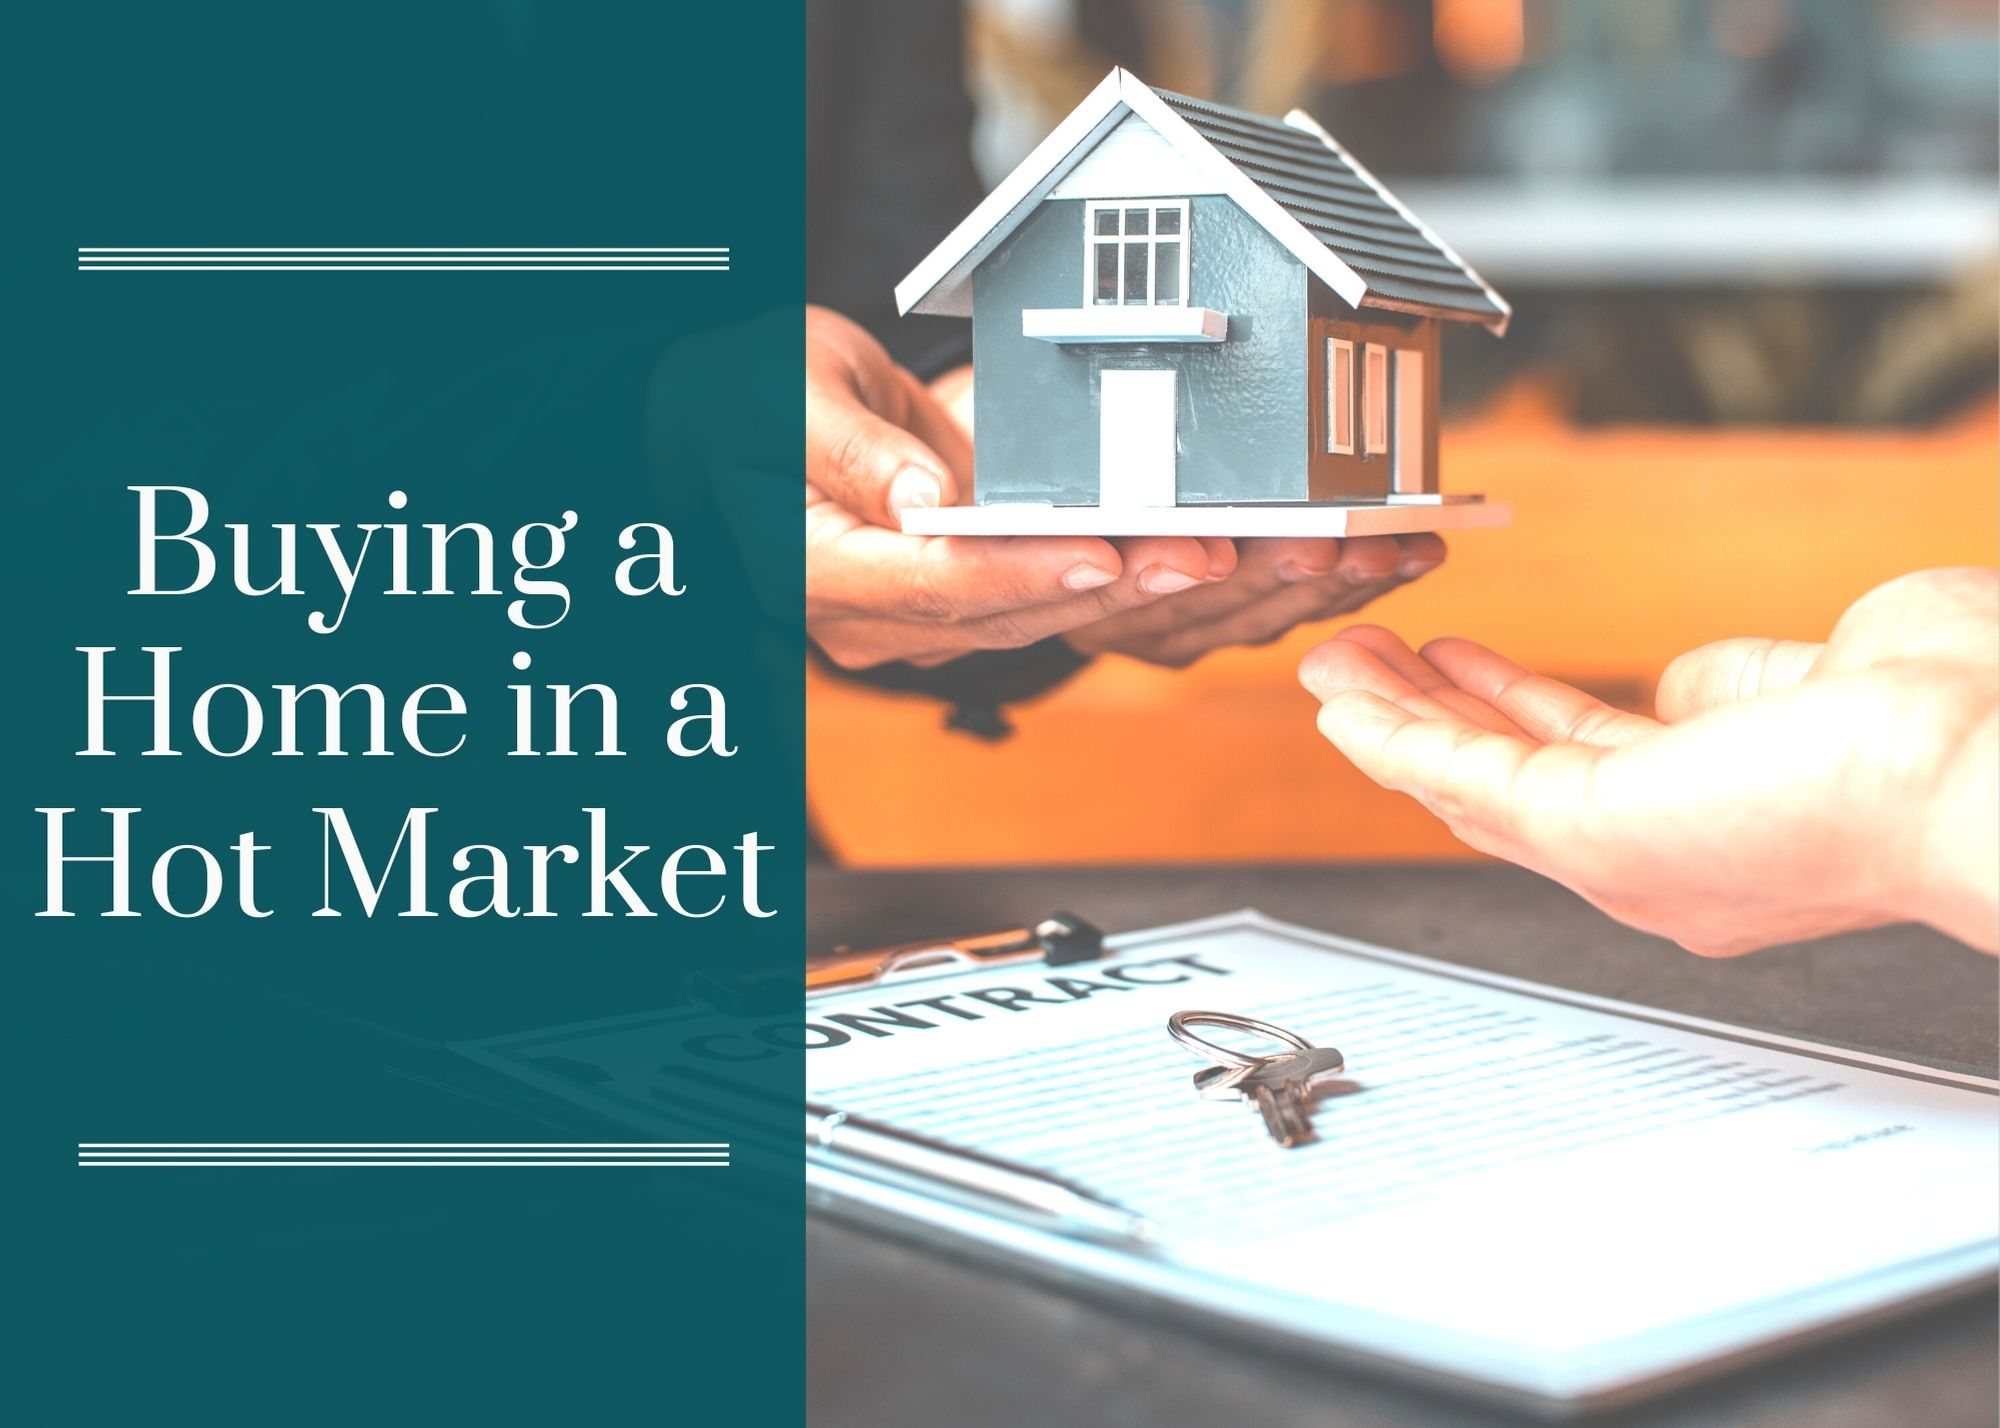 Buying a Home in a Hot Market